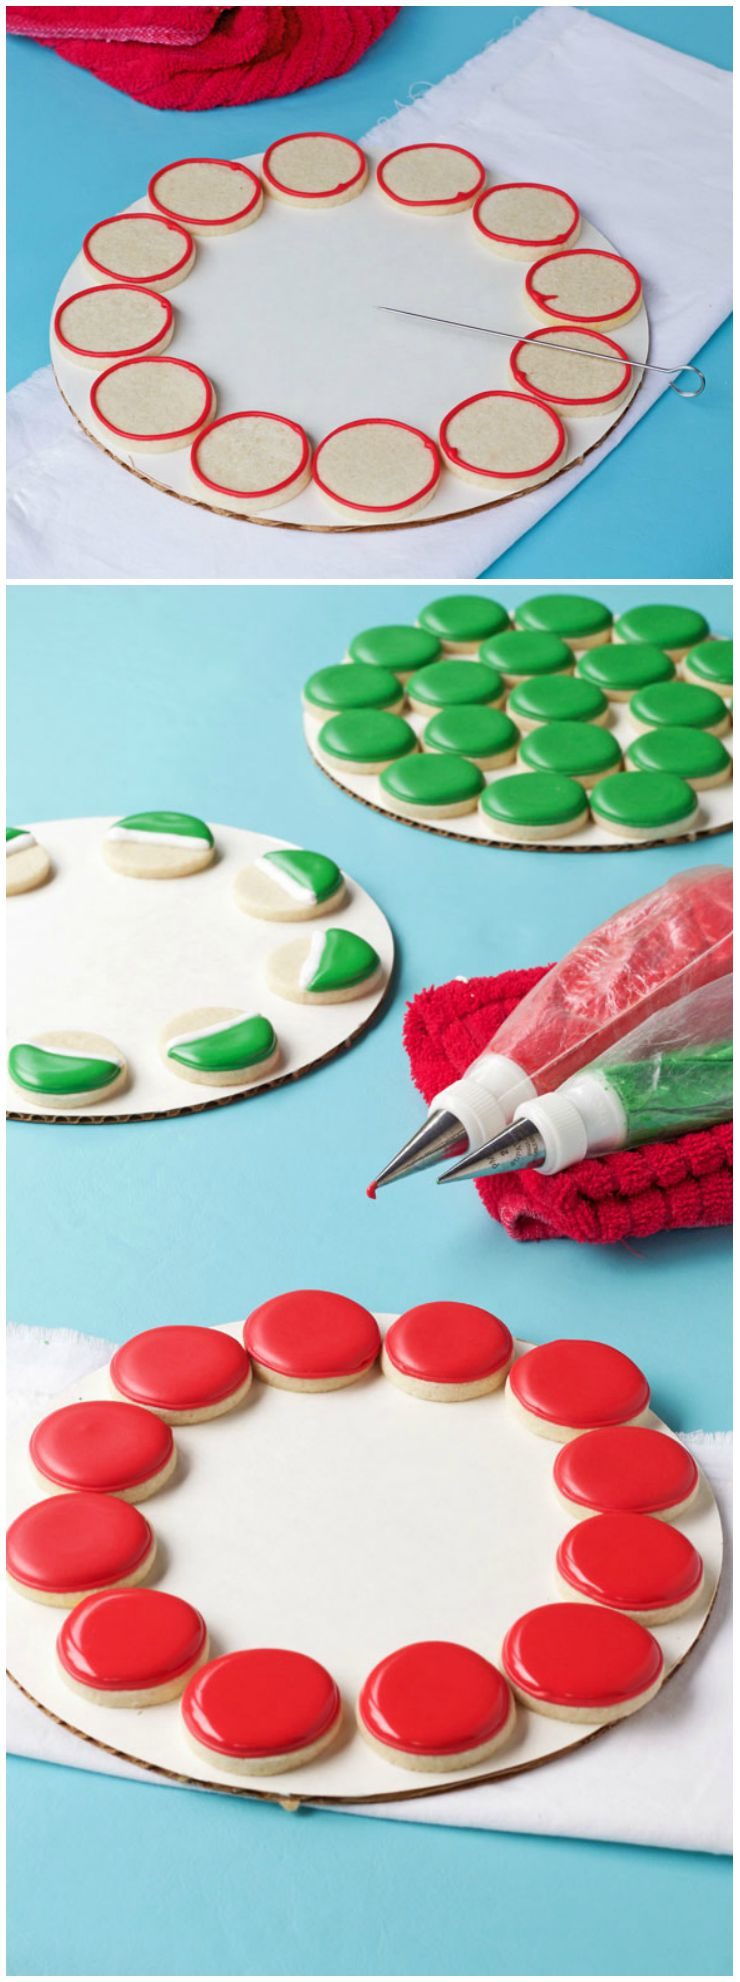 How to Make a Simple Watermelon Cookie Platter with a Video via thebearfootbaker.com